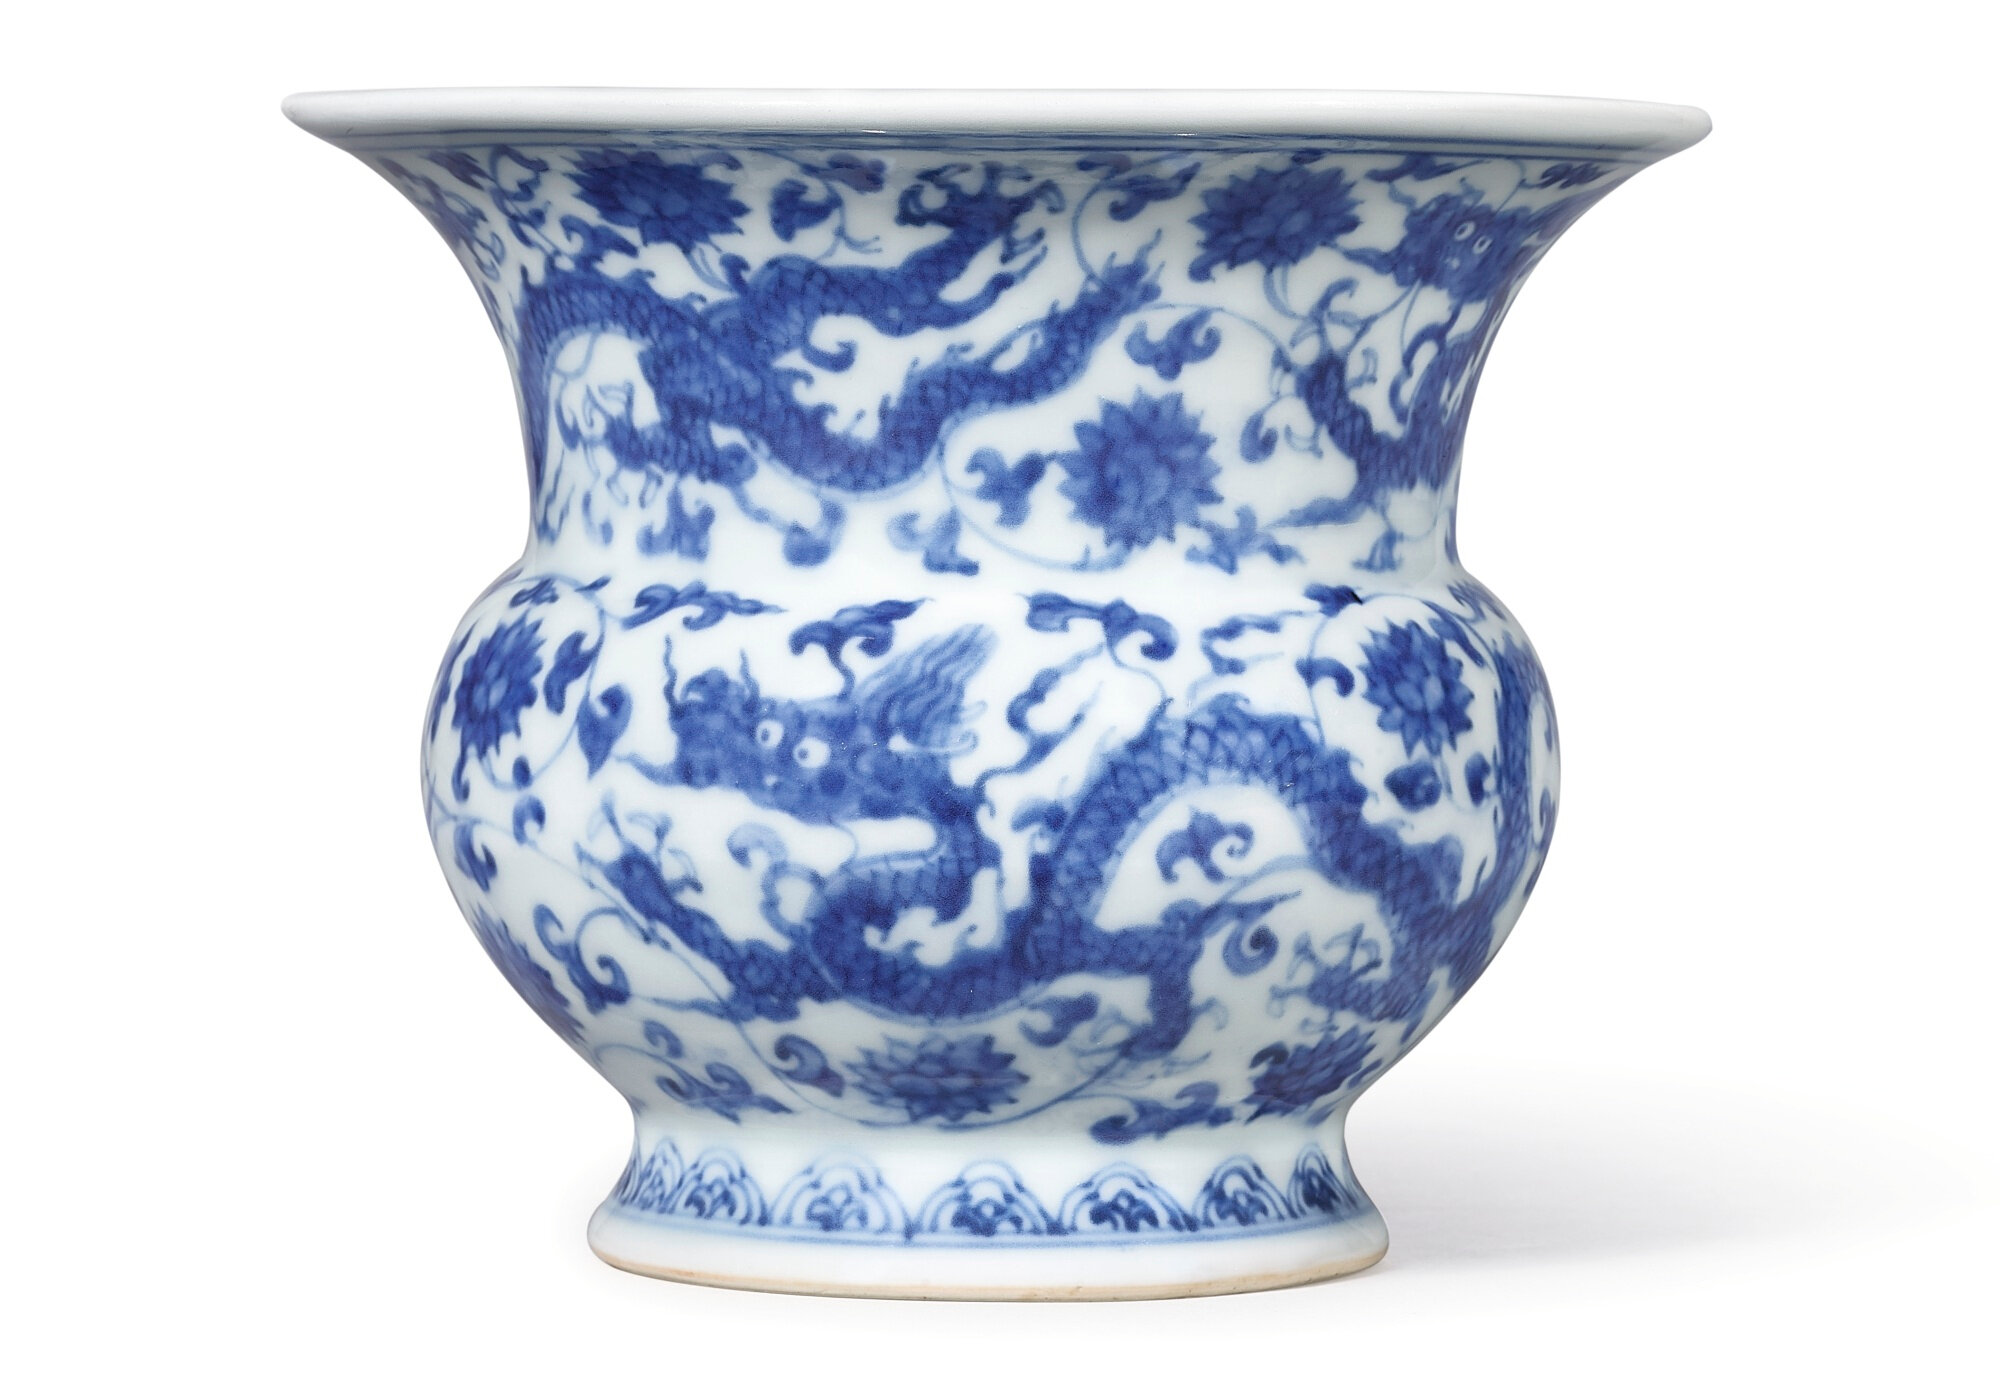 A Rare Blue and White 'Dragon' Zhadou, Mark and period of Zhengde (1506-1521)